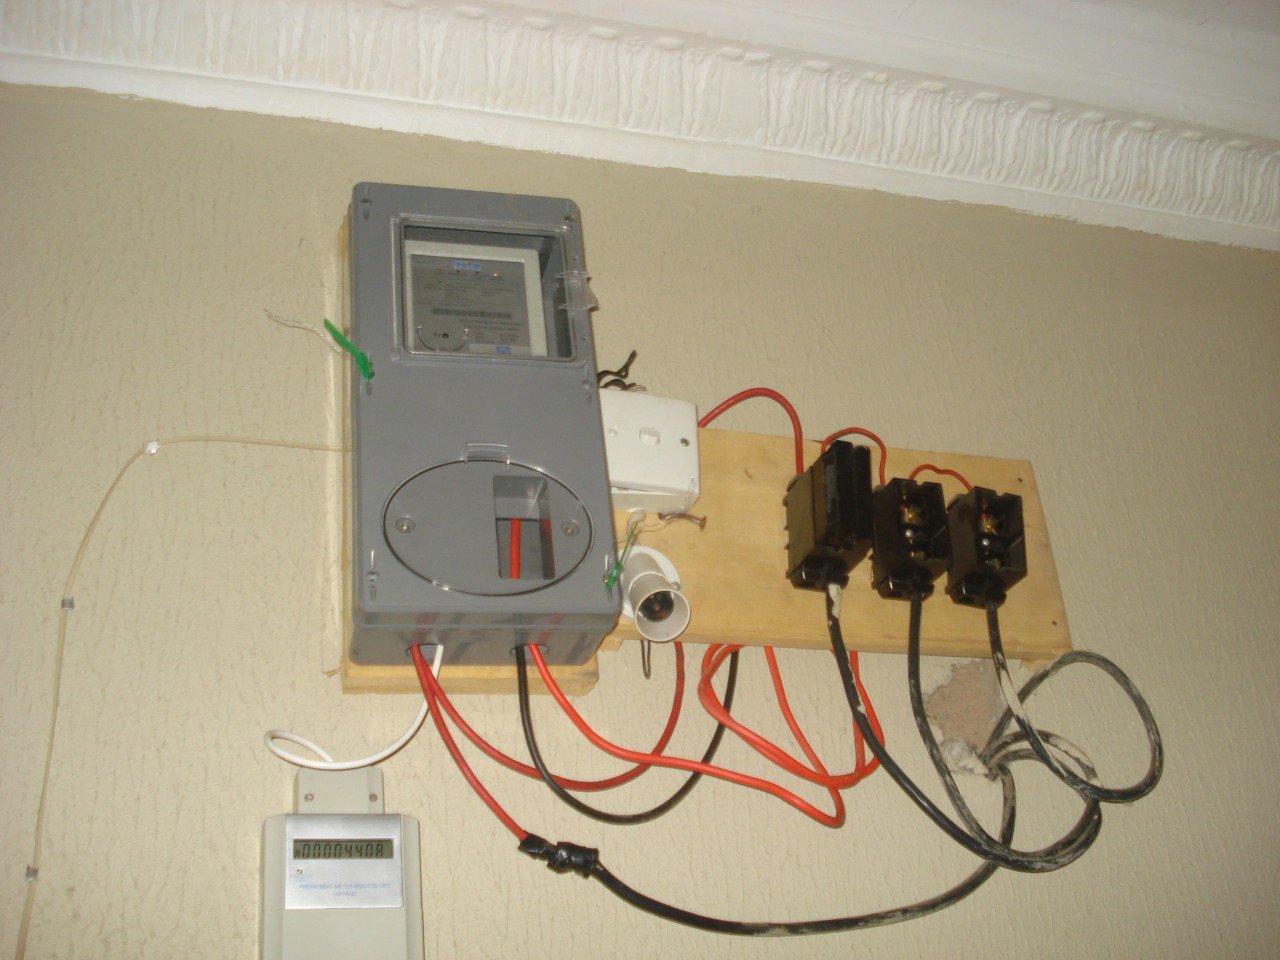 Prepaid electricity meters: a scheme that became a scam - Report